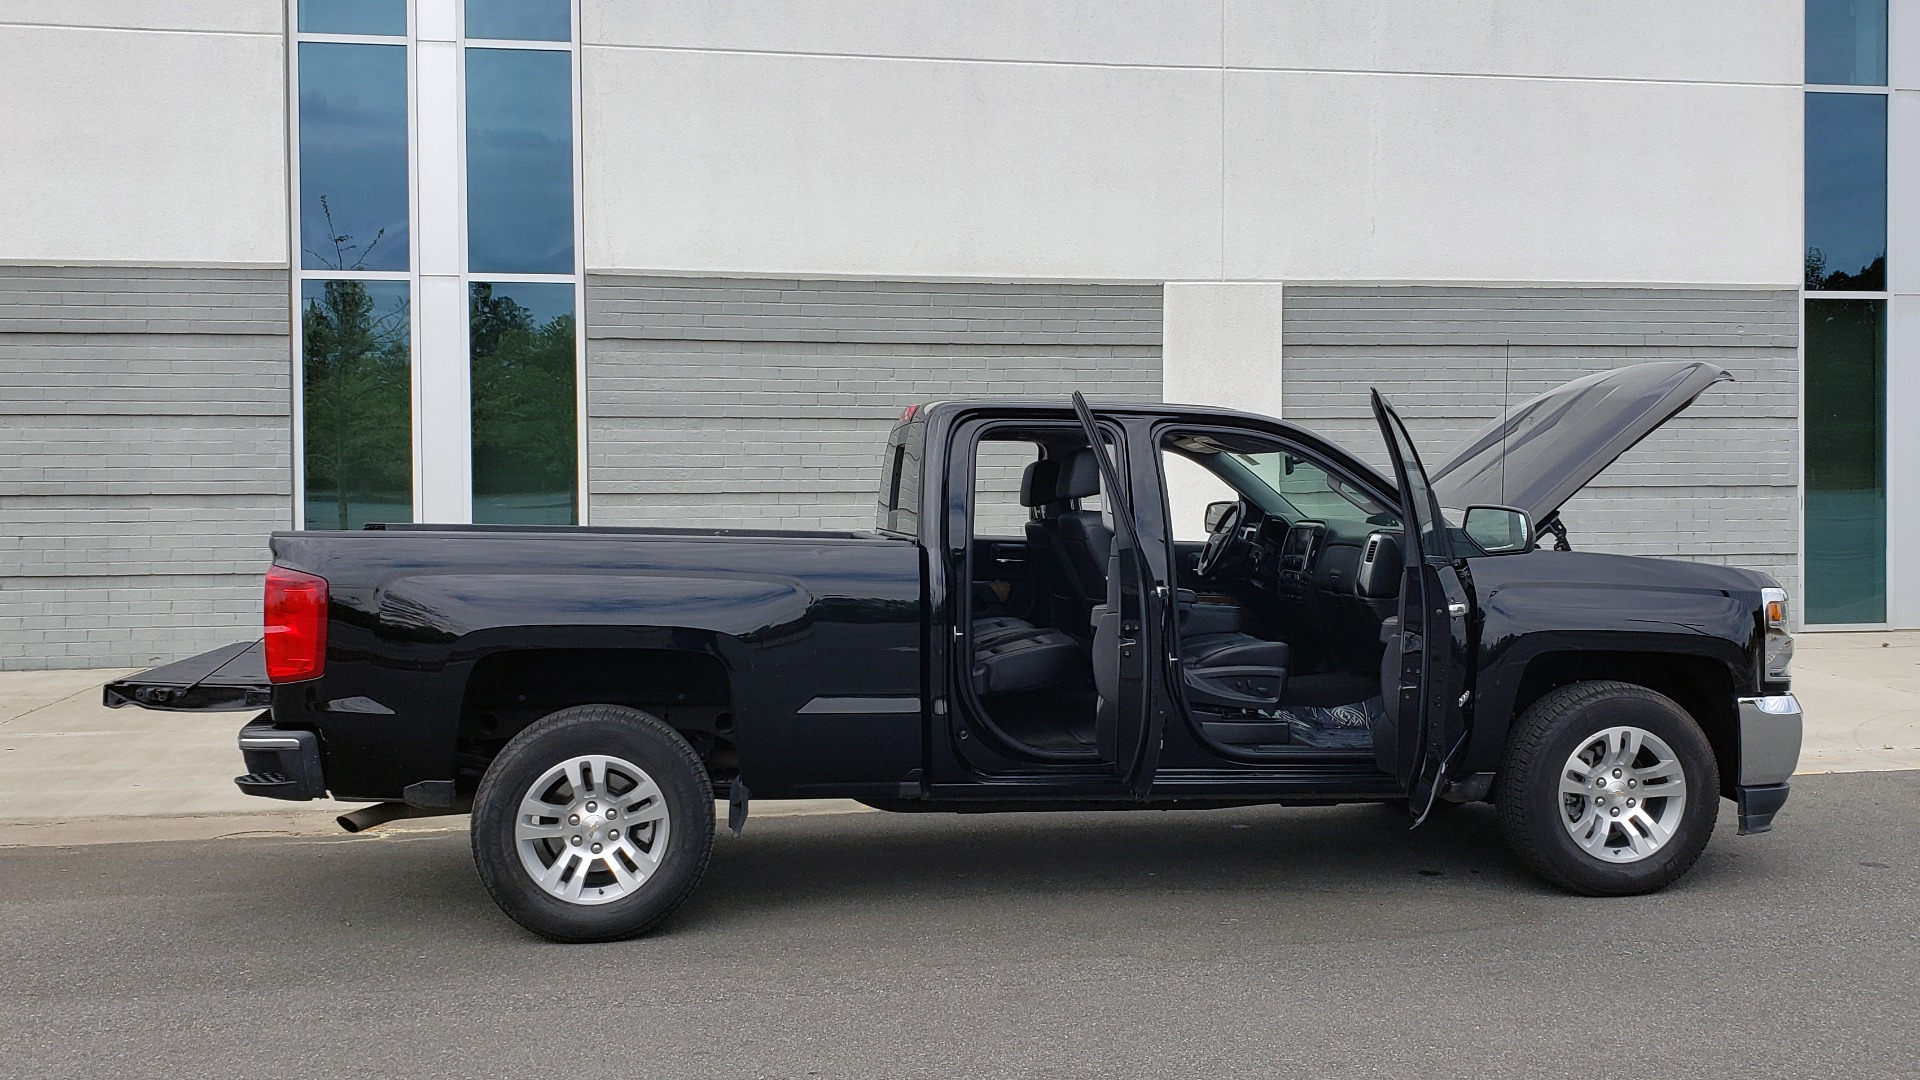 Used 2018 Chevrolet SILVERADO 1500 LTZ 1LZ / 5.3L V8 / 2WD / 6-SPD AUTO / DOUBLECAB / REARVIEW for sale Sold at Formula Imports in Charlotte NC 28227 10